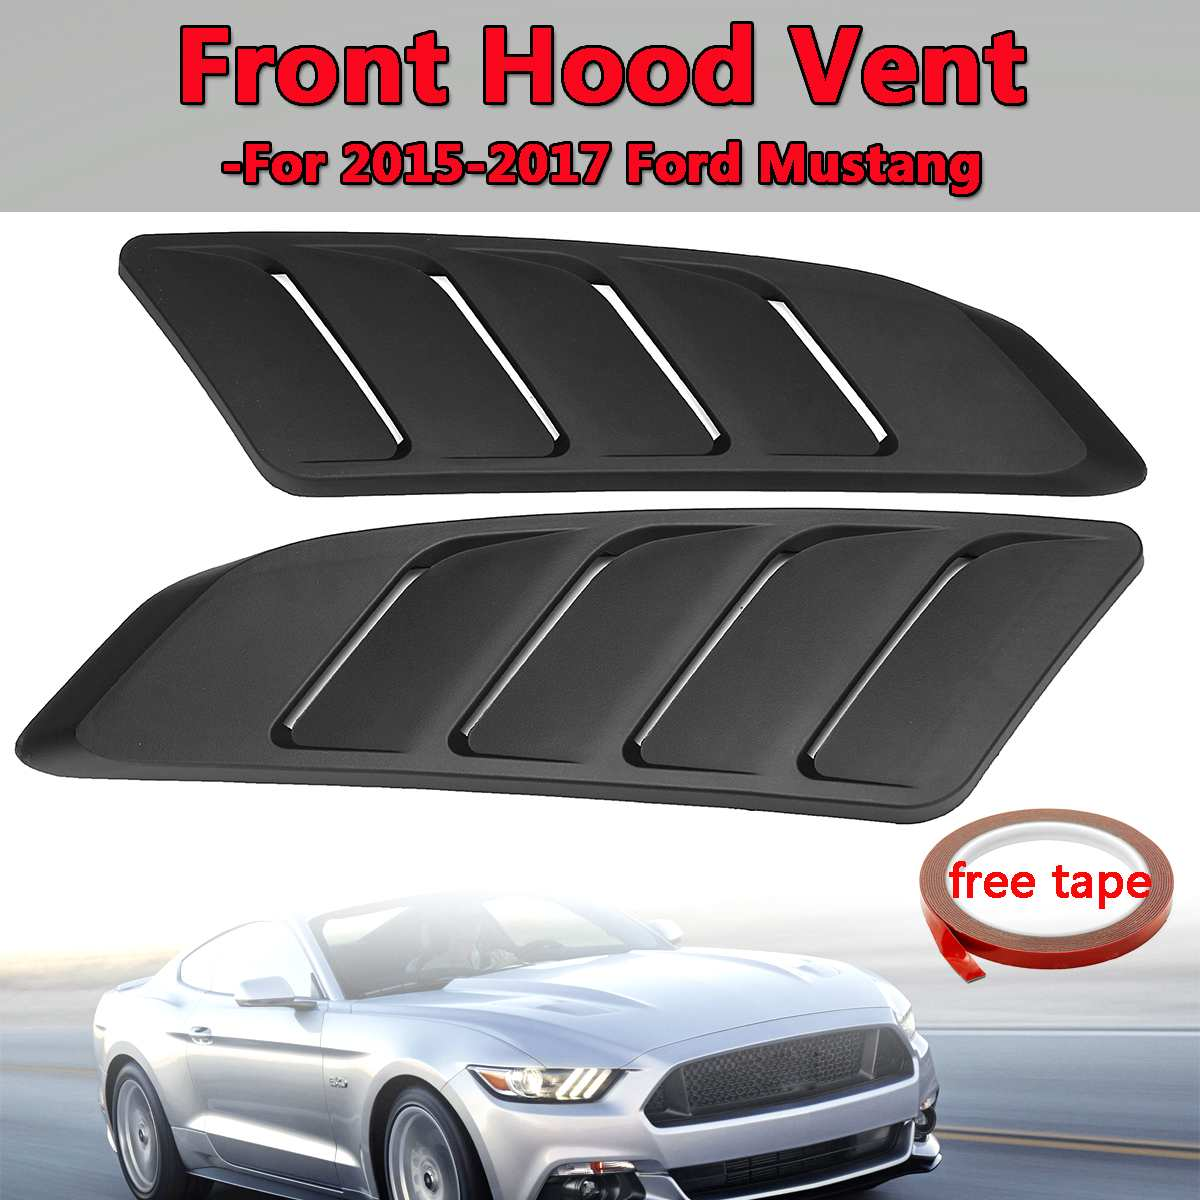 2Pcs Universal Car Air Intake Scoop Bonnet Hood Vent Front Hood Vent Fit For 2015 2017 For Ford For Mustang Panel Trim Black